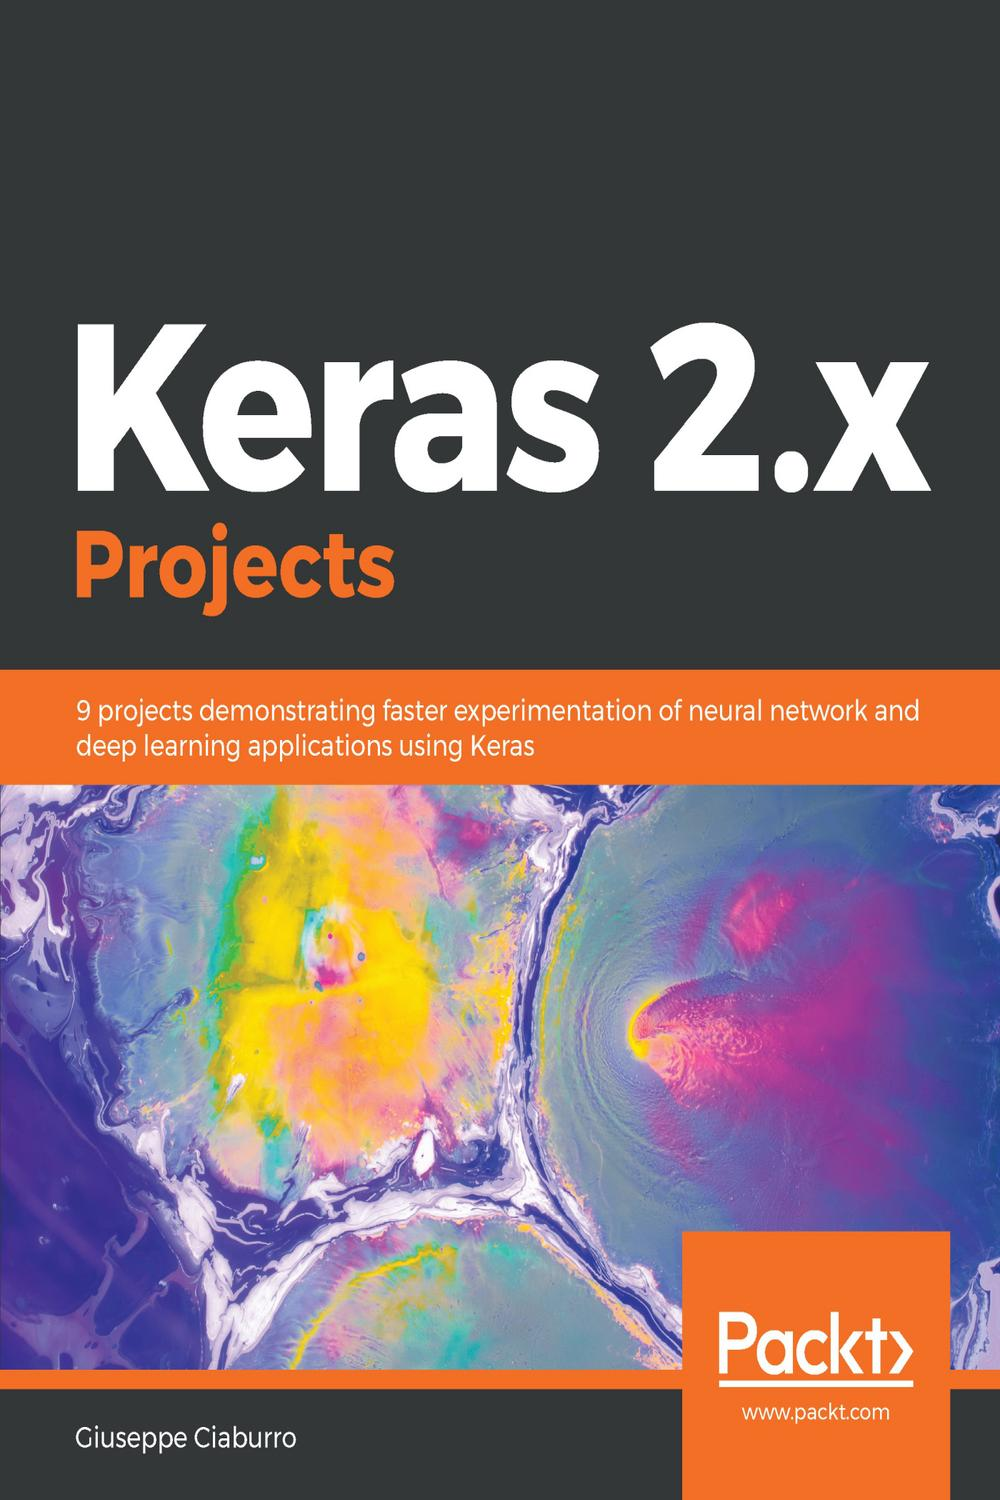 Keras 2 x Projects by Giuseppe Ciaburro | Read online | PDF